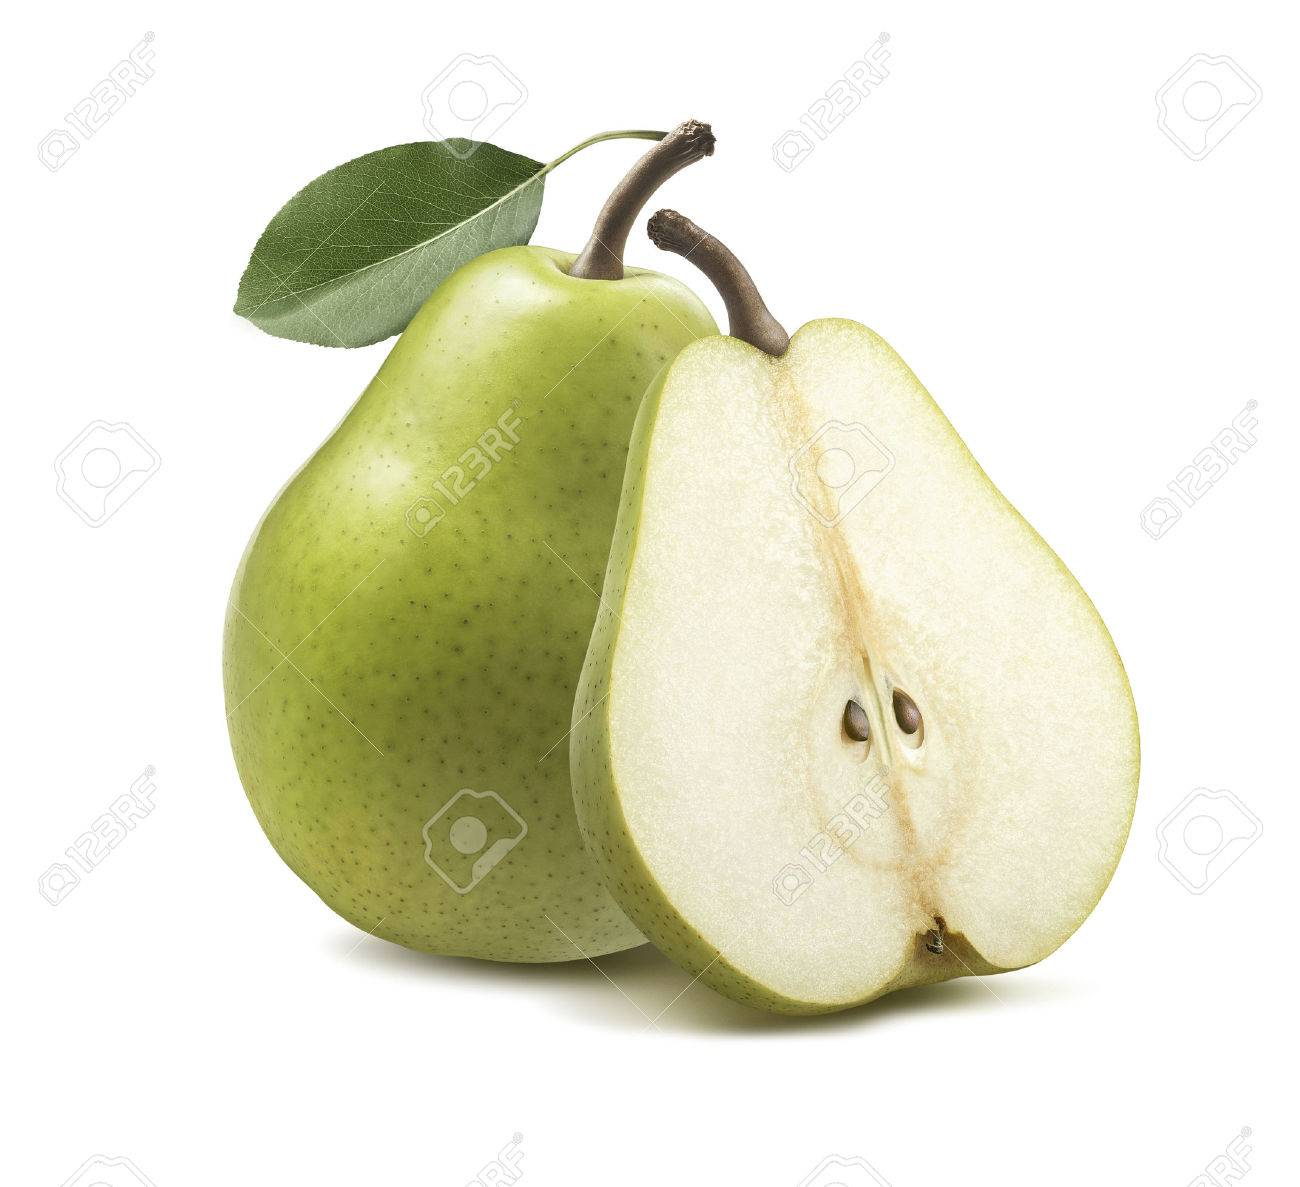 Fresh green pear half isolated on white background as package design element - 69848109